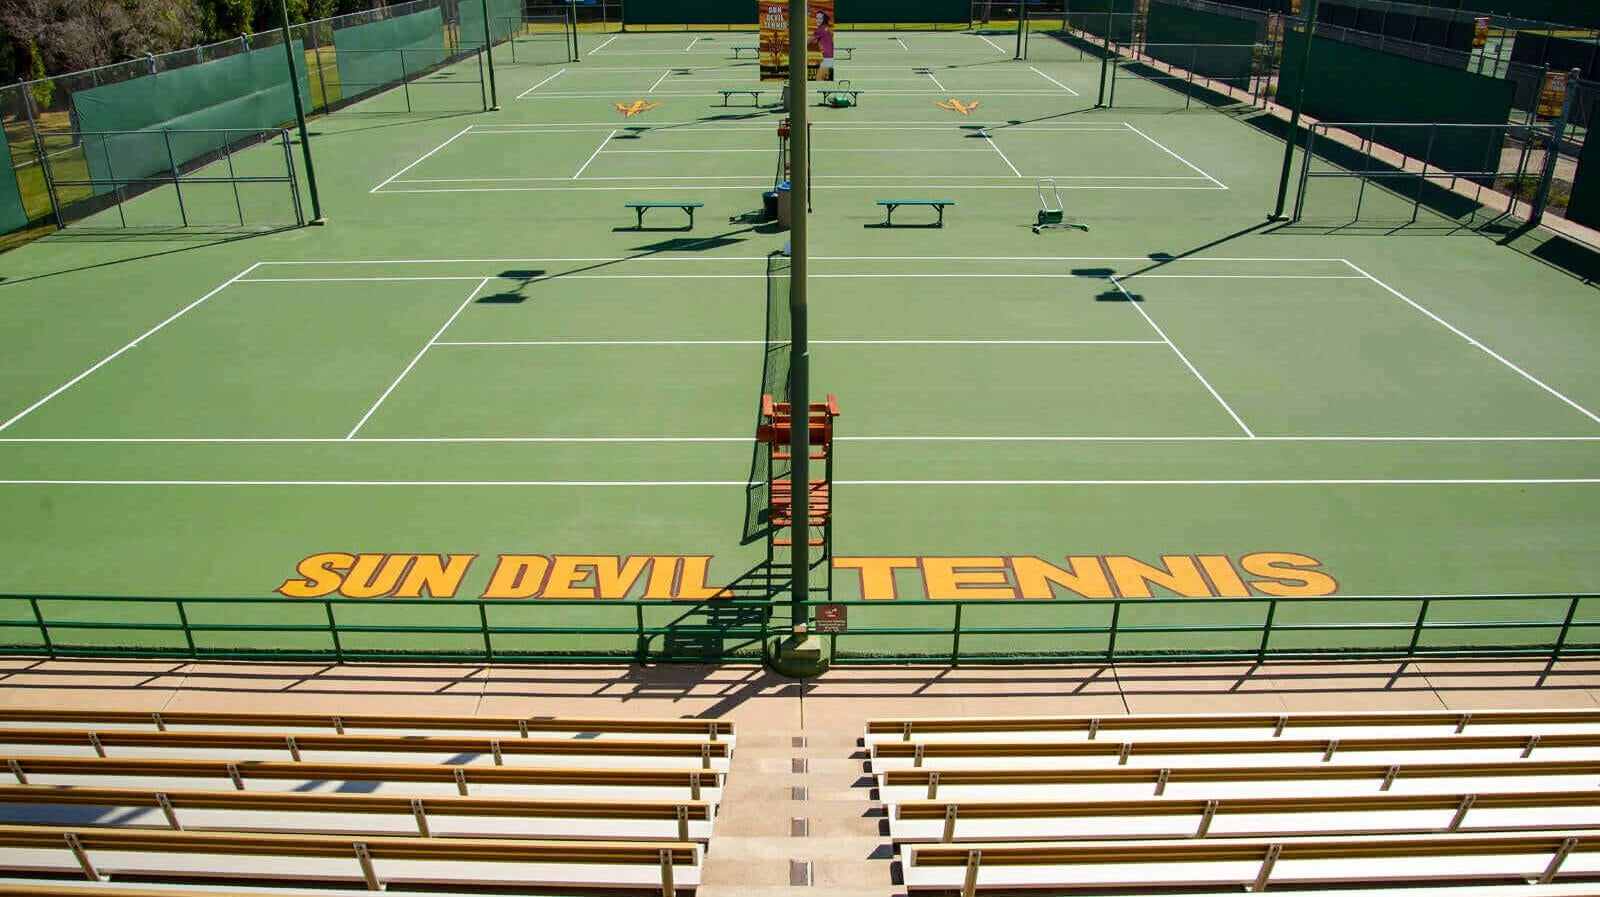 The view from the stands at the Whiteman Tennis Center